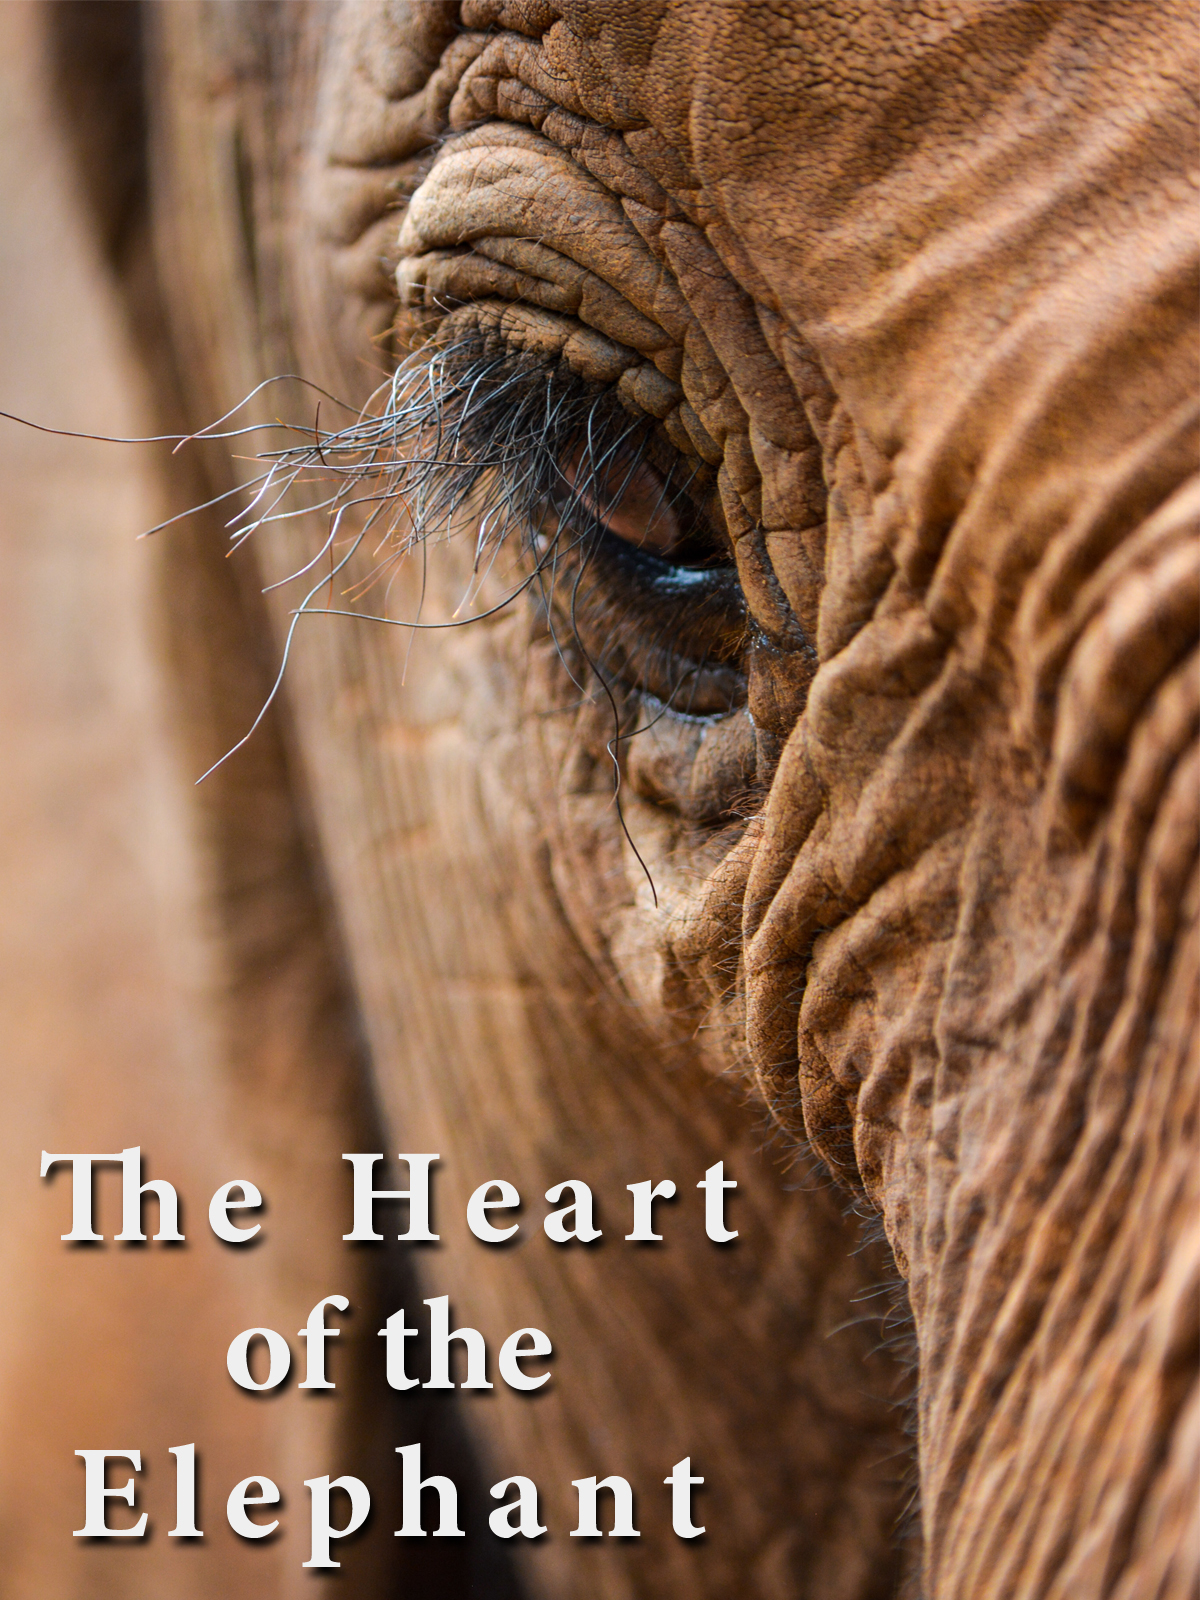 The Heart of the Elephant